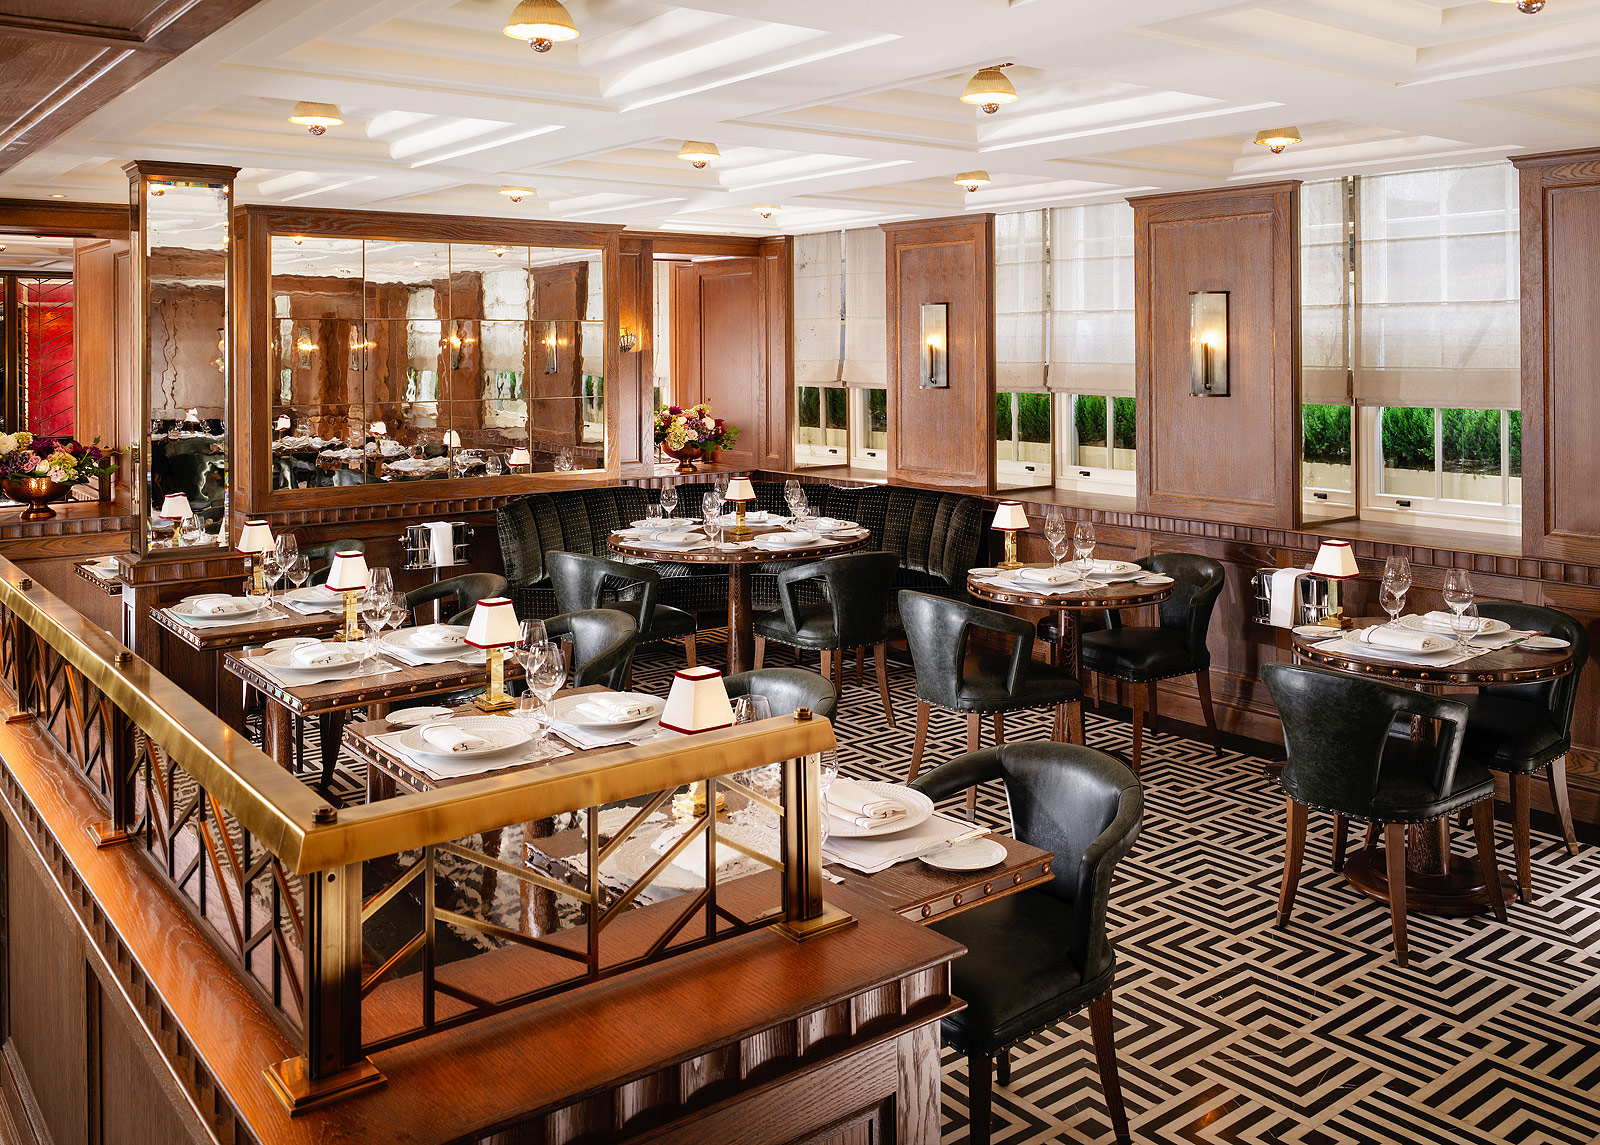 Shaun Rankin's Ormer Mayfair Arrives At Flemings Hotel In London